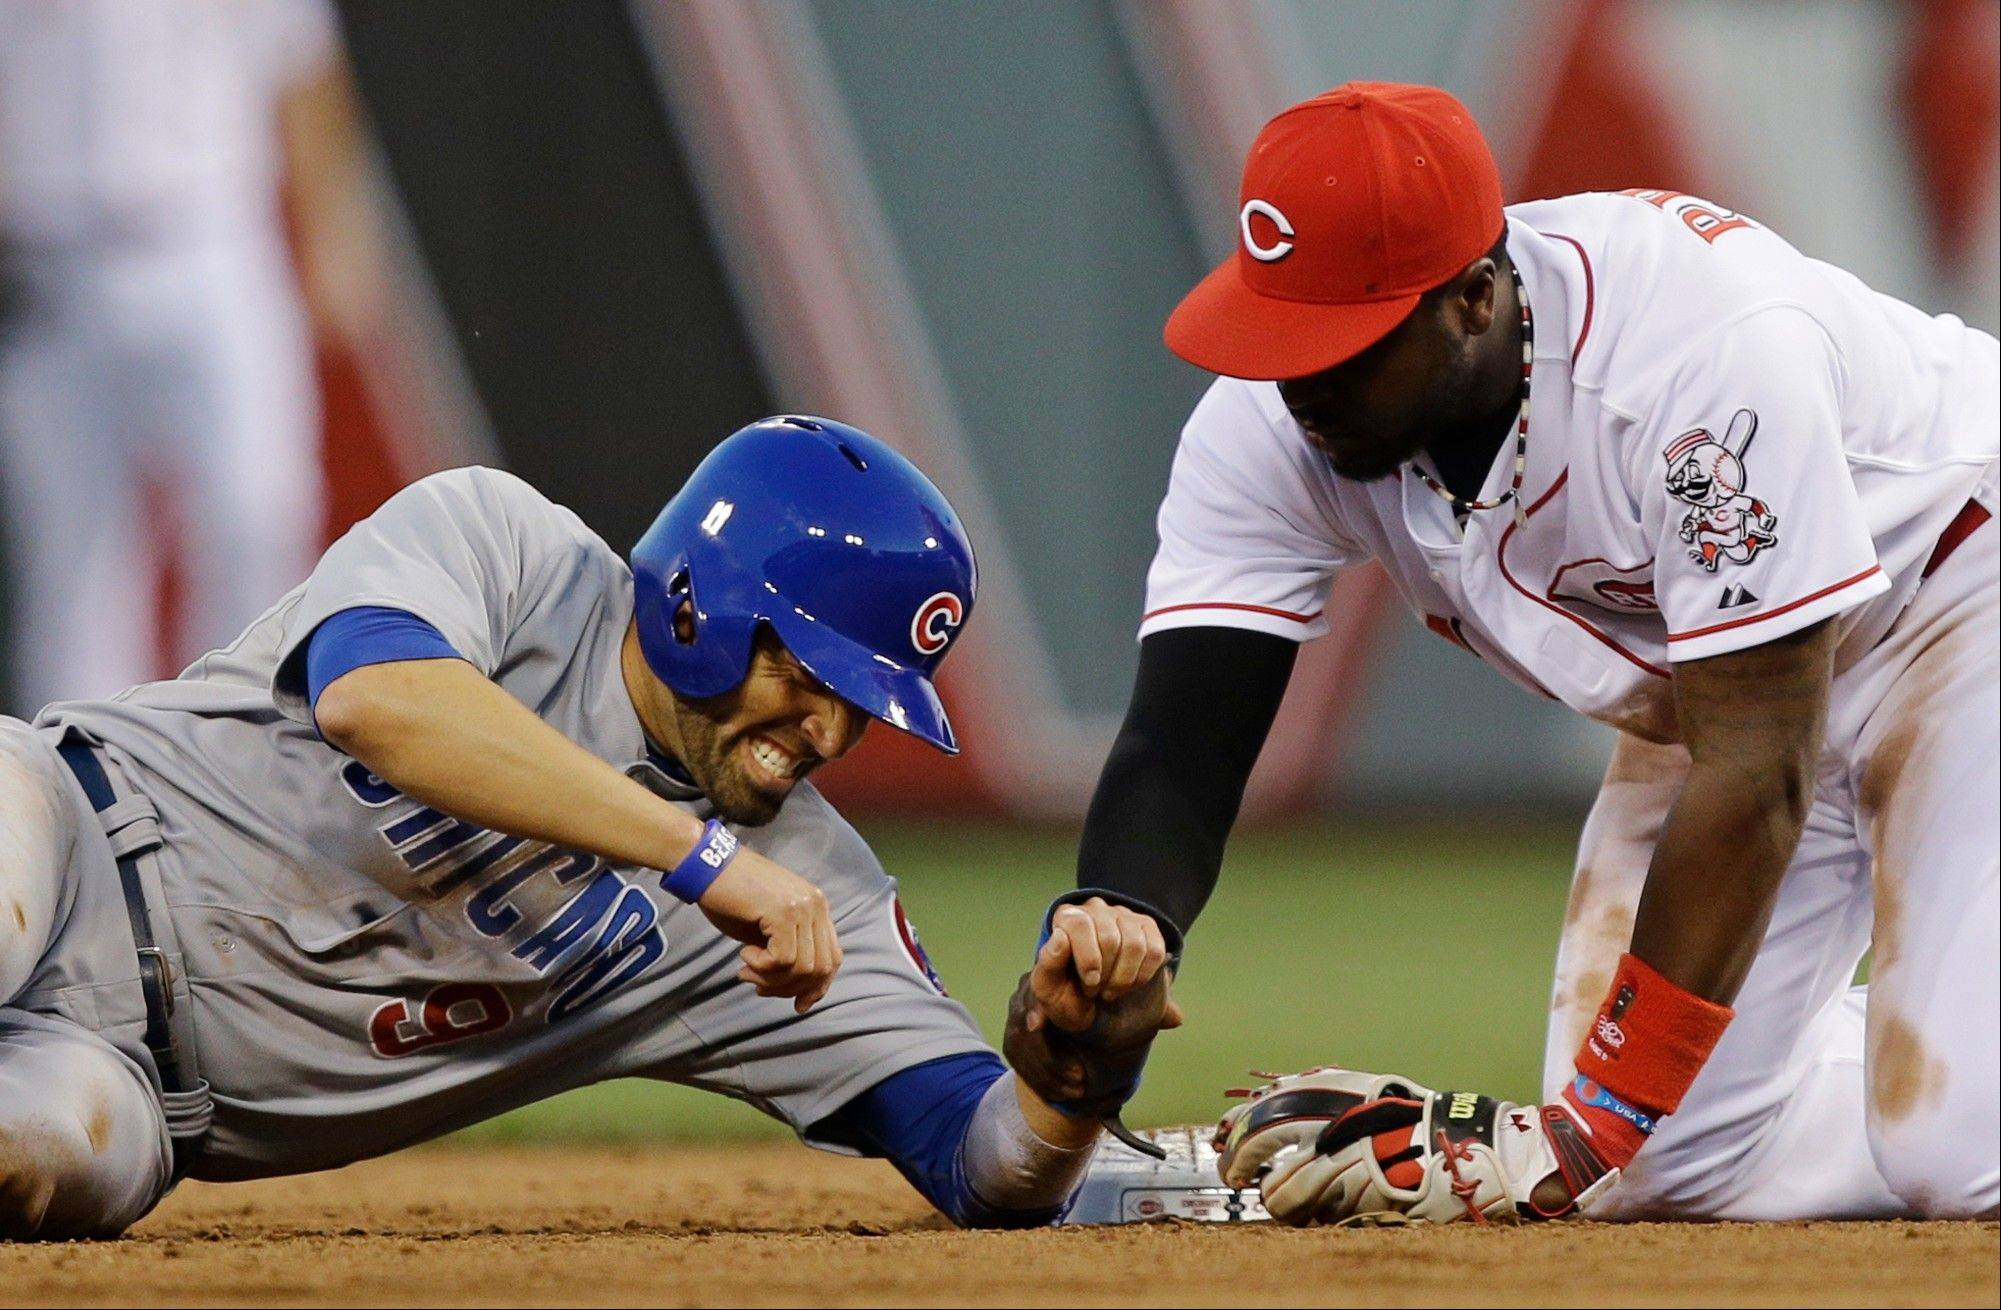 Chicago Cubs' David DeJesus (9) reacts after being forced out at second base by Cincinnati Reds second baseman Brandon Phillips in the fifth inning of a baseball game on Friday, May 24, 2013, in Cincinnati.